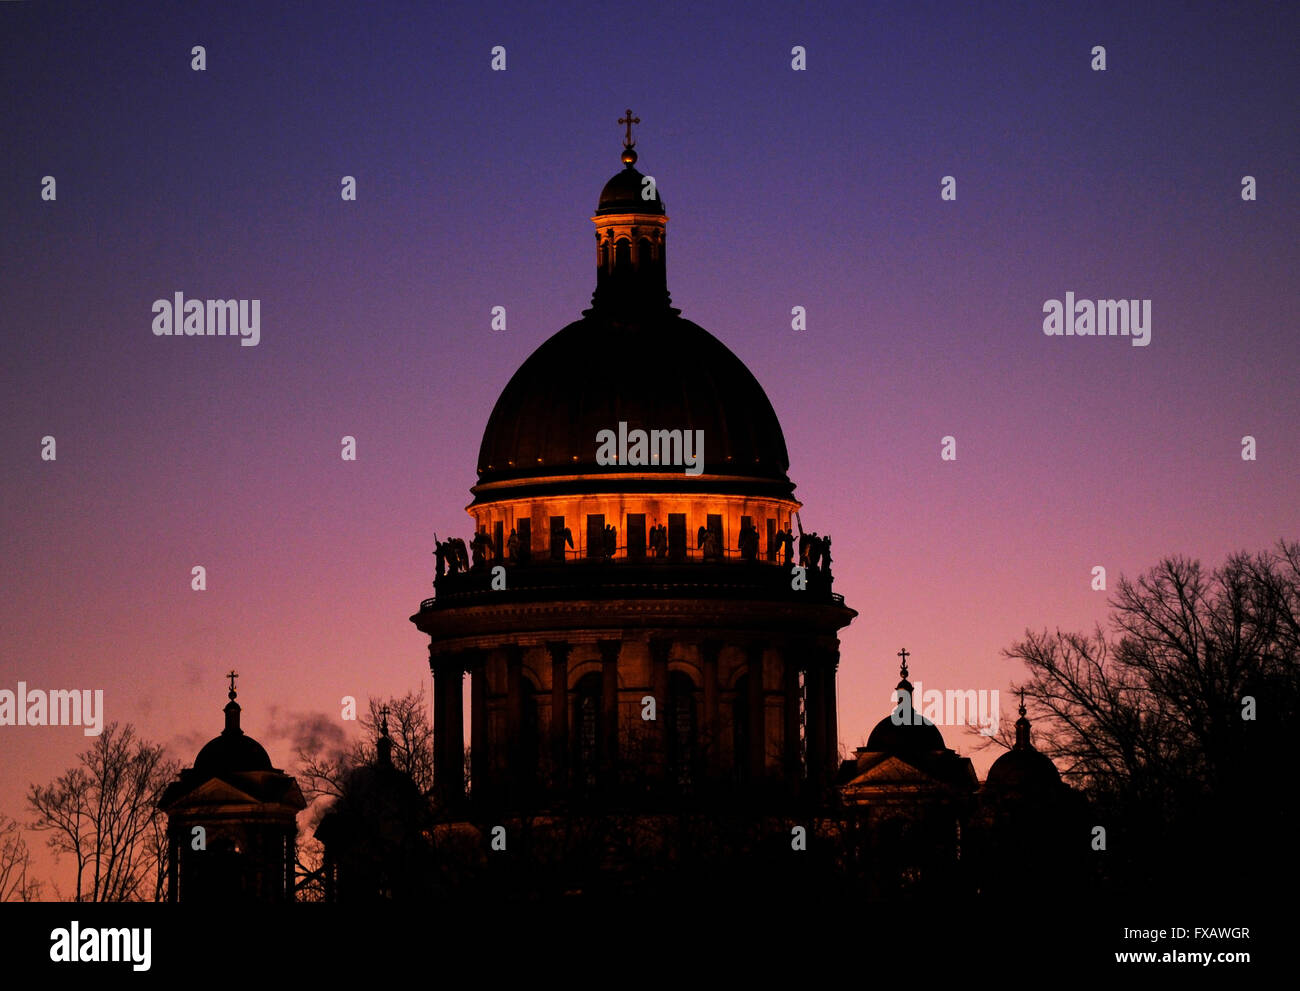 Russia. Saint Petersburg. Saint Isaac's Cathedral. Russian Orthodox. Architec Auguste de Montferrand. Neoclassical - Stock Image